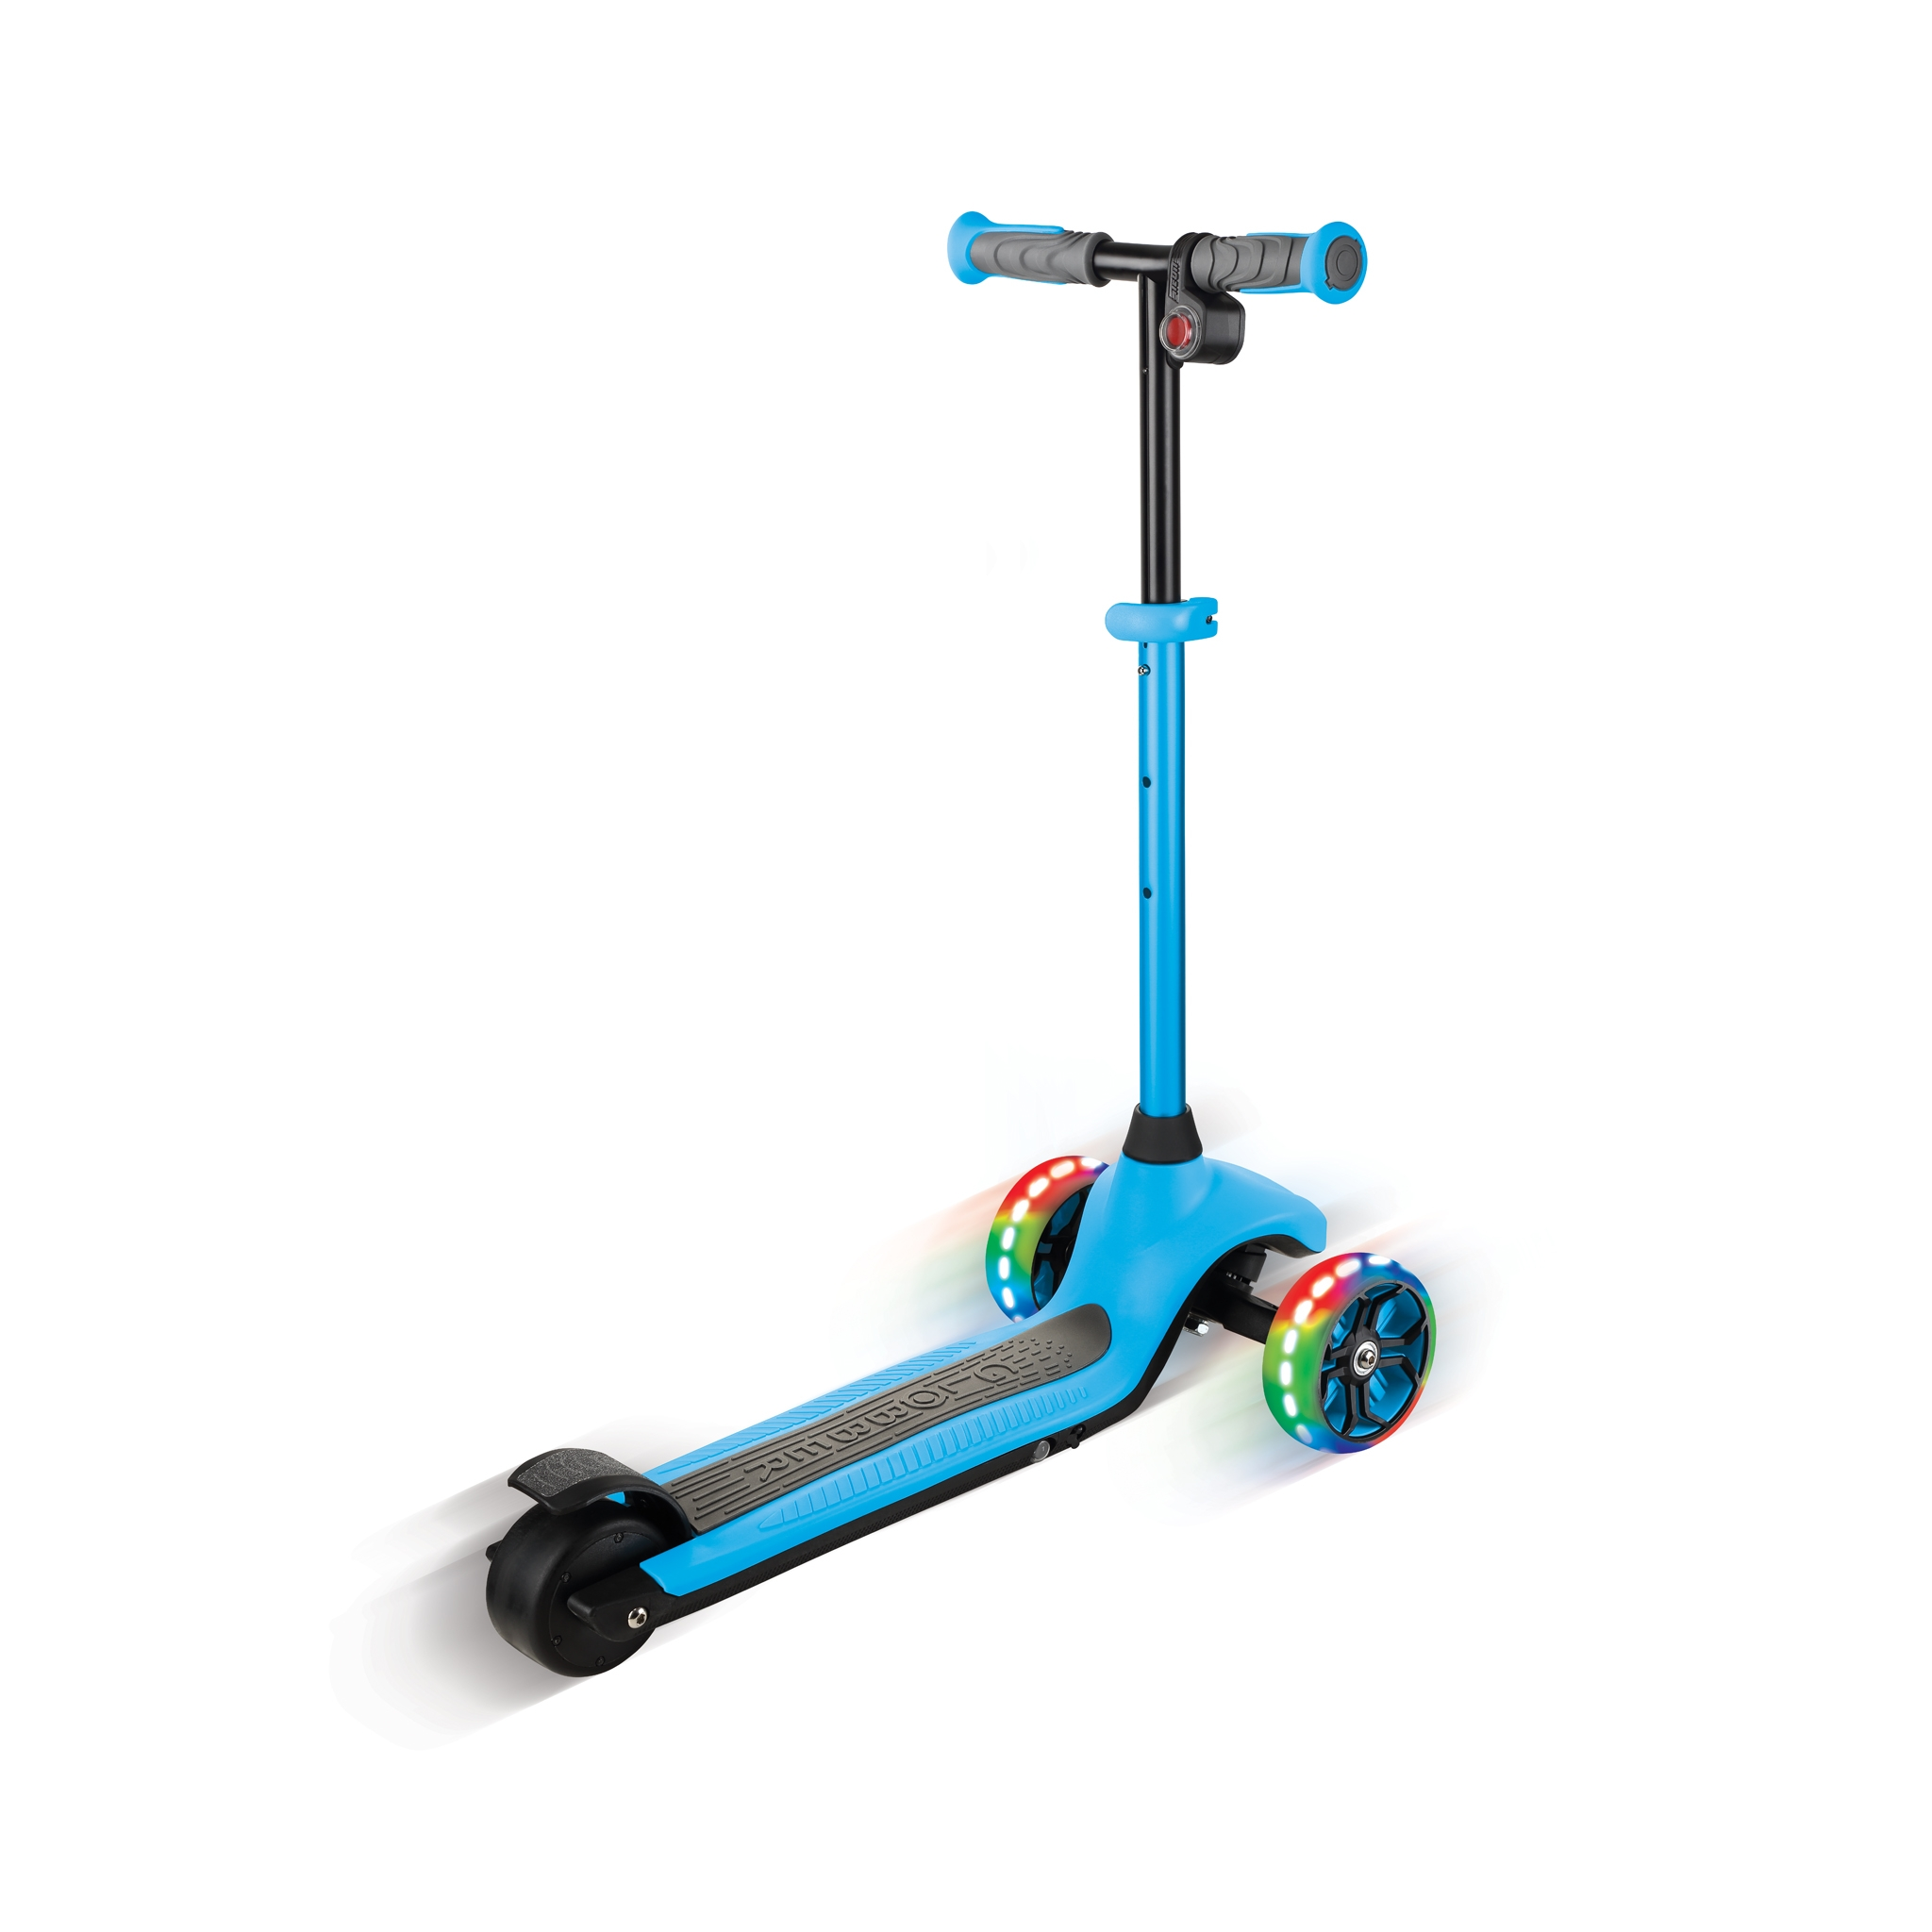 Globber-ONE-K-E-MOTION-4-award-winning-3-wheel-electric-scooter-for-boys-and-girls-with-dual-braking-system_sky-blue 3